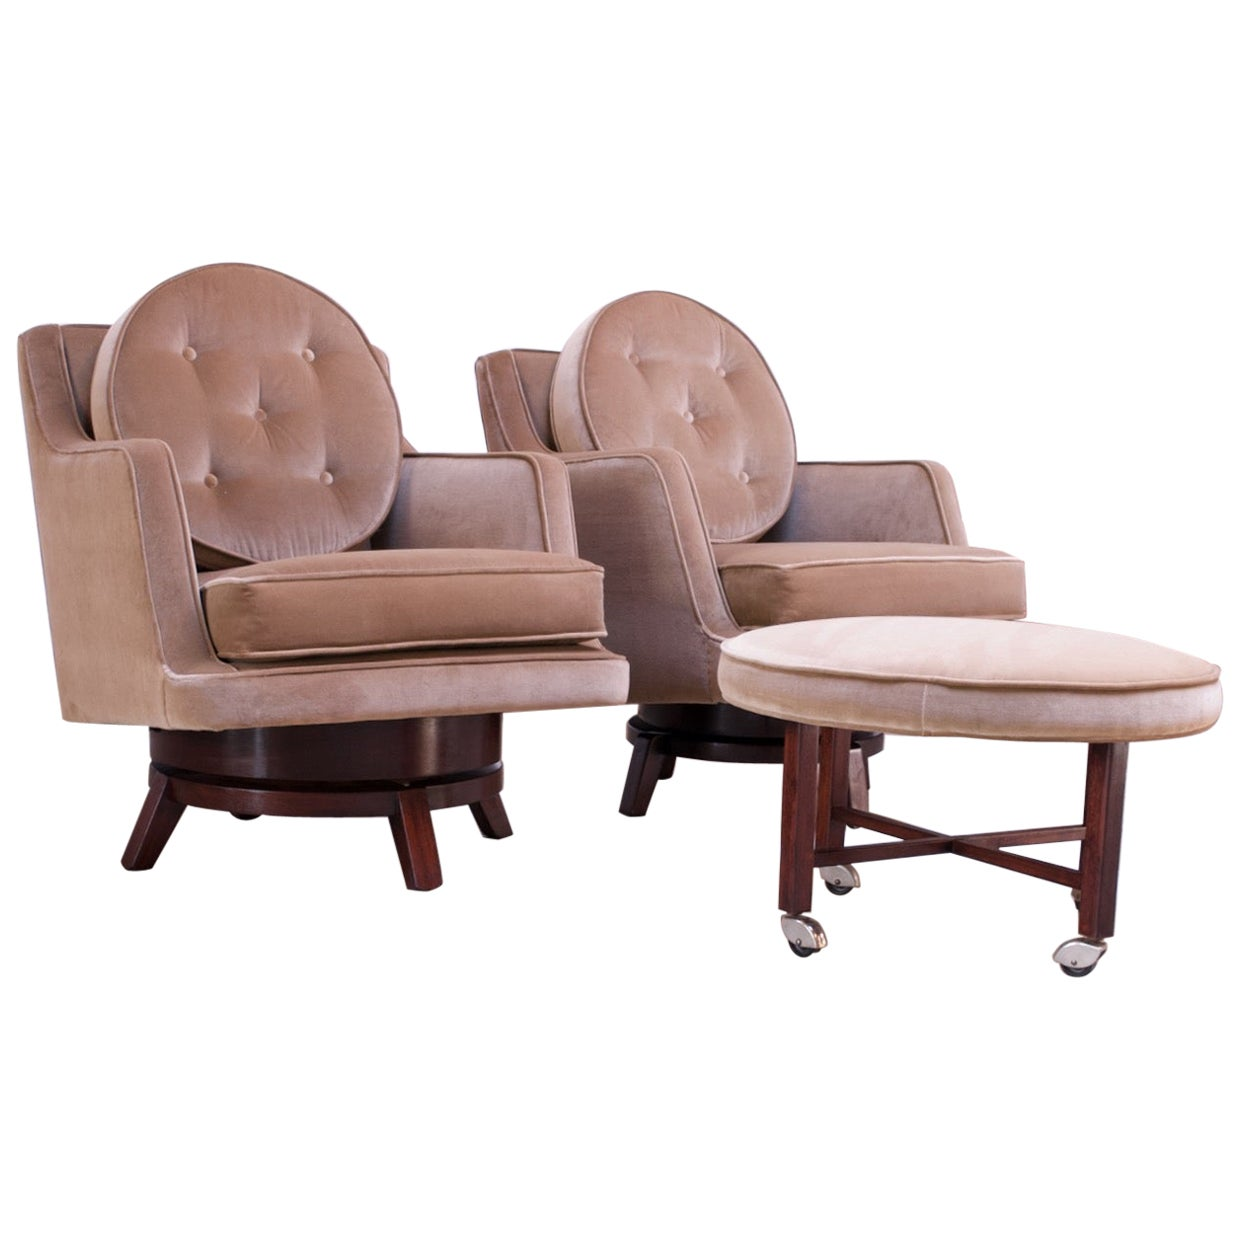 Edward Wormley for Dunbar Revolving Lounge Chairs in Mahogany with Ottoman